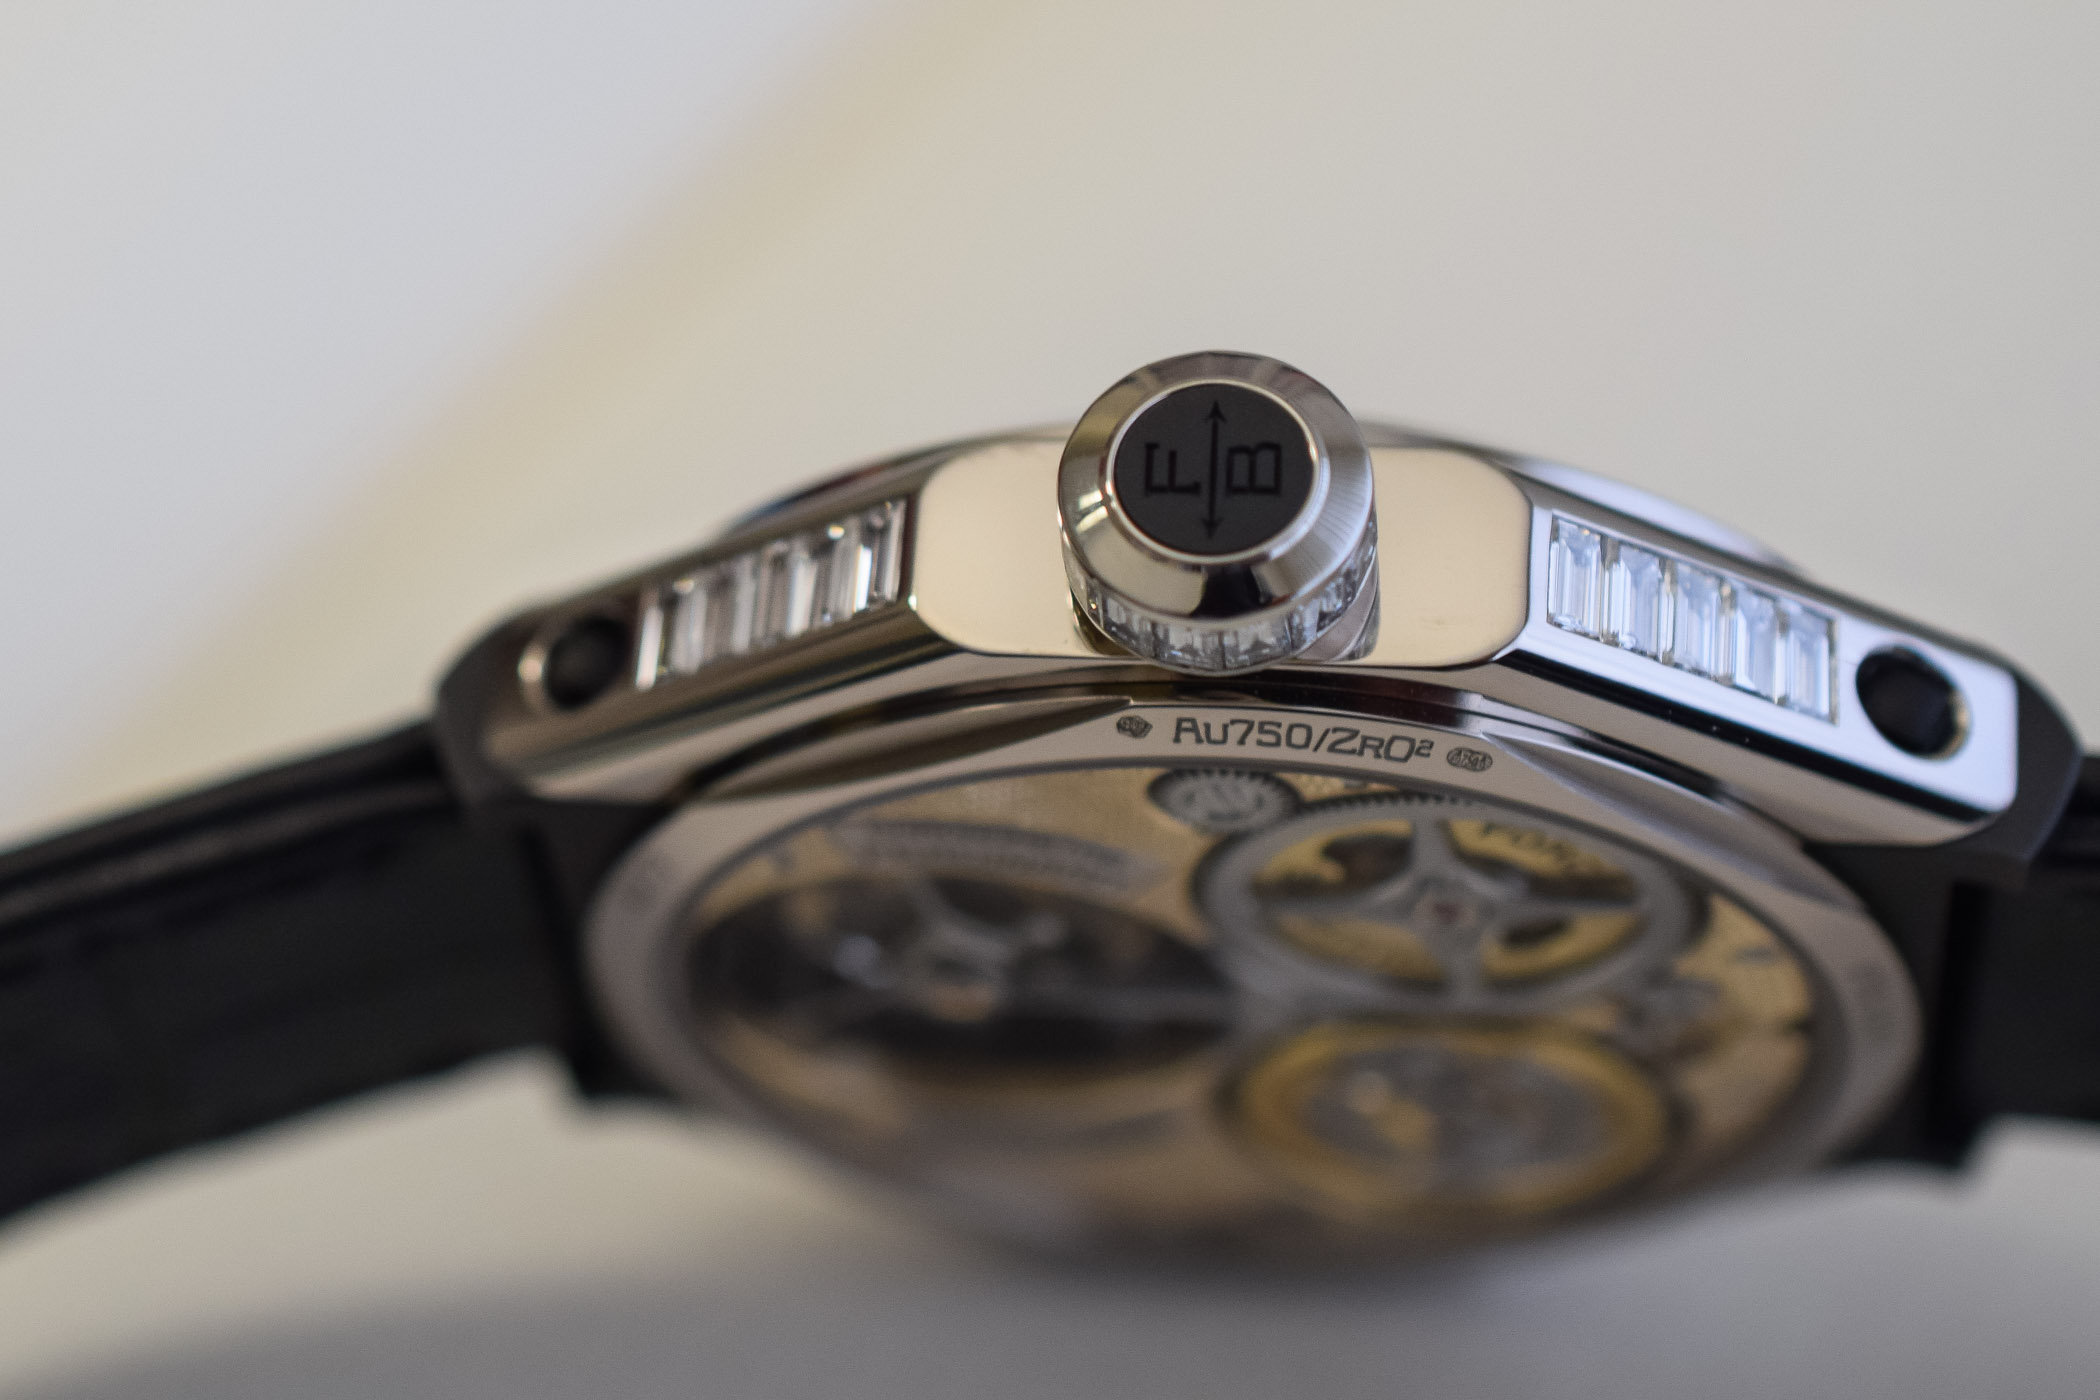 Ferdinand Berthoud Oeuvre d'or Collection Chronometre FB1 SIHH 2019 - 2